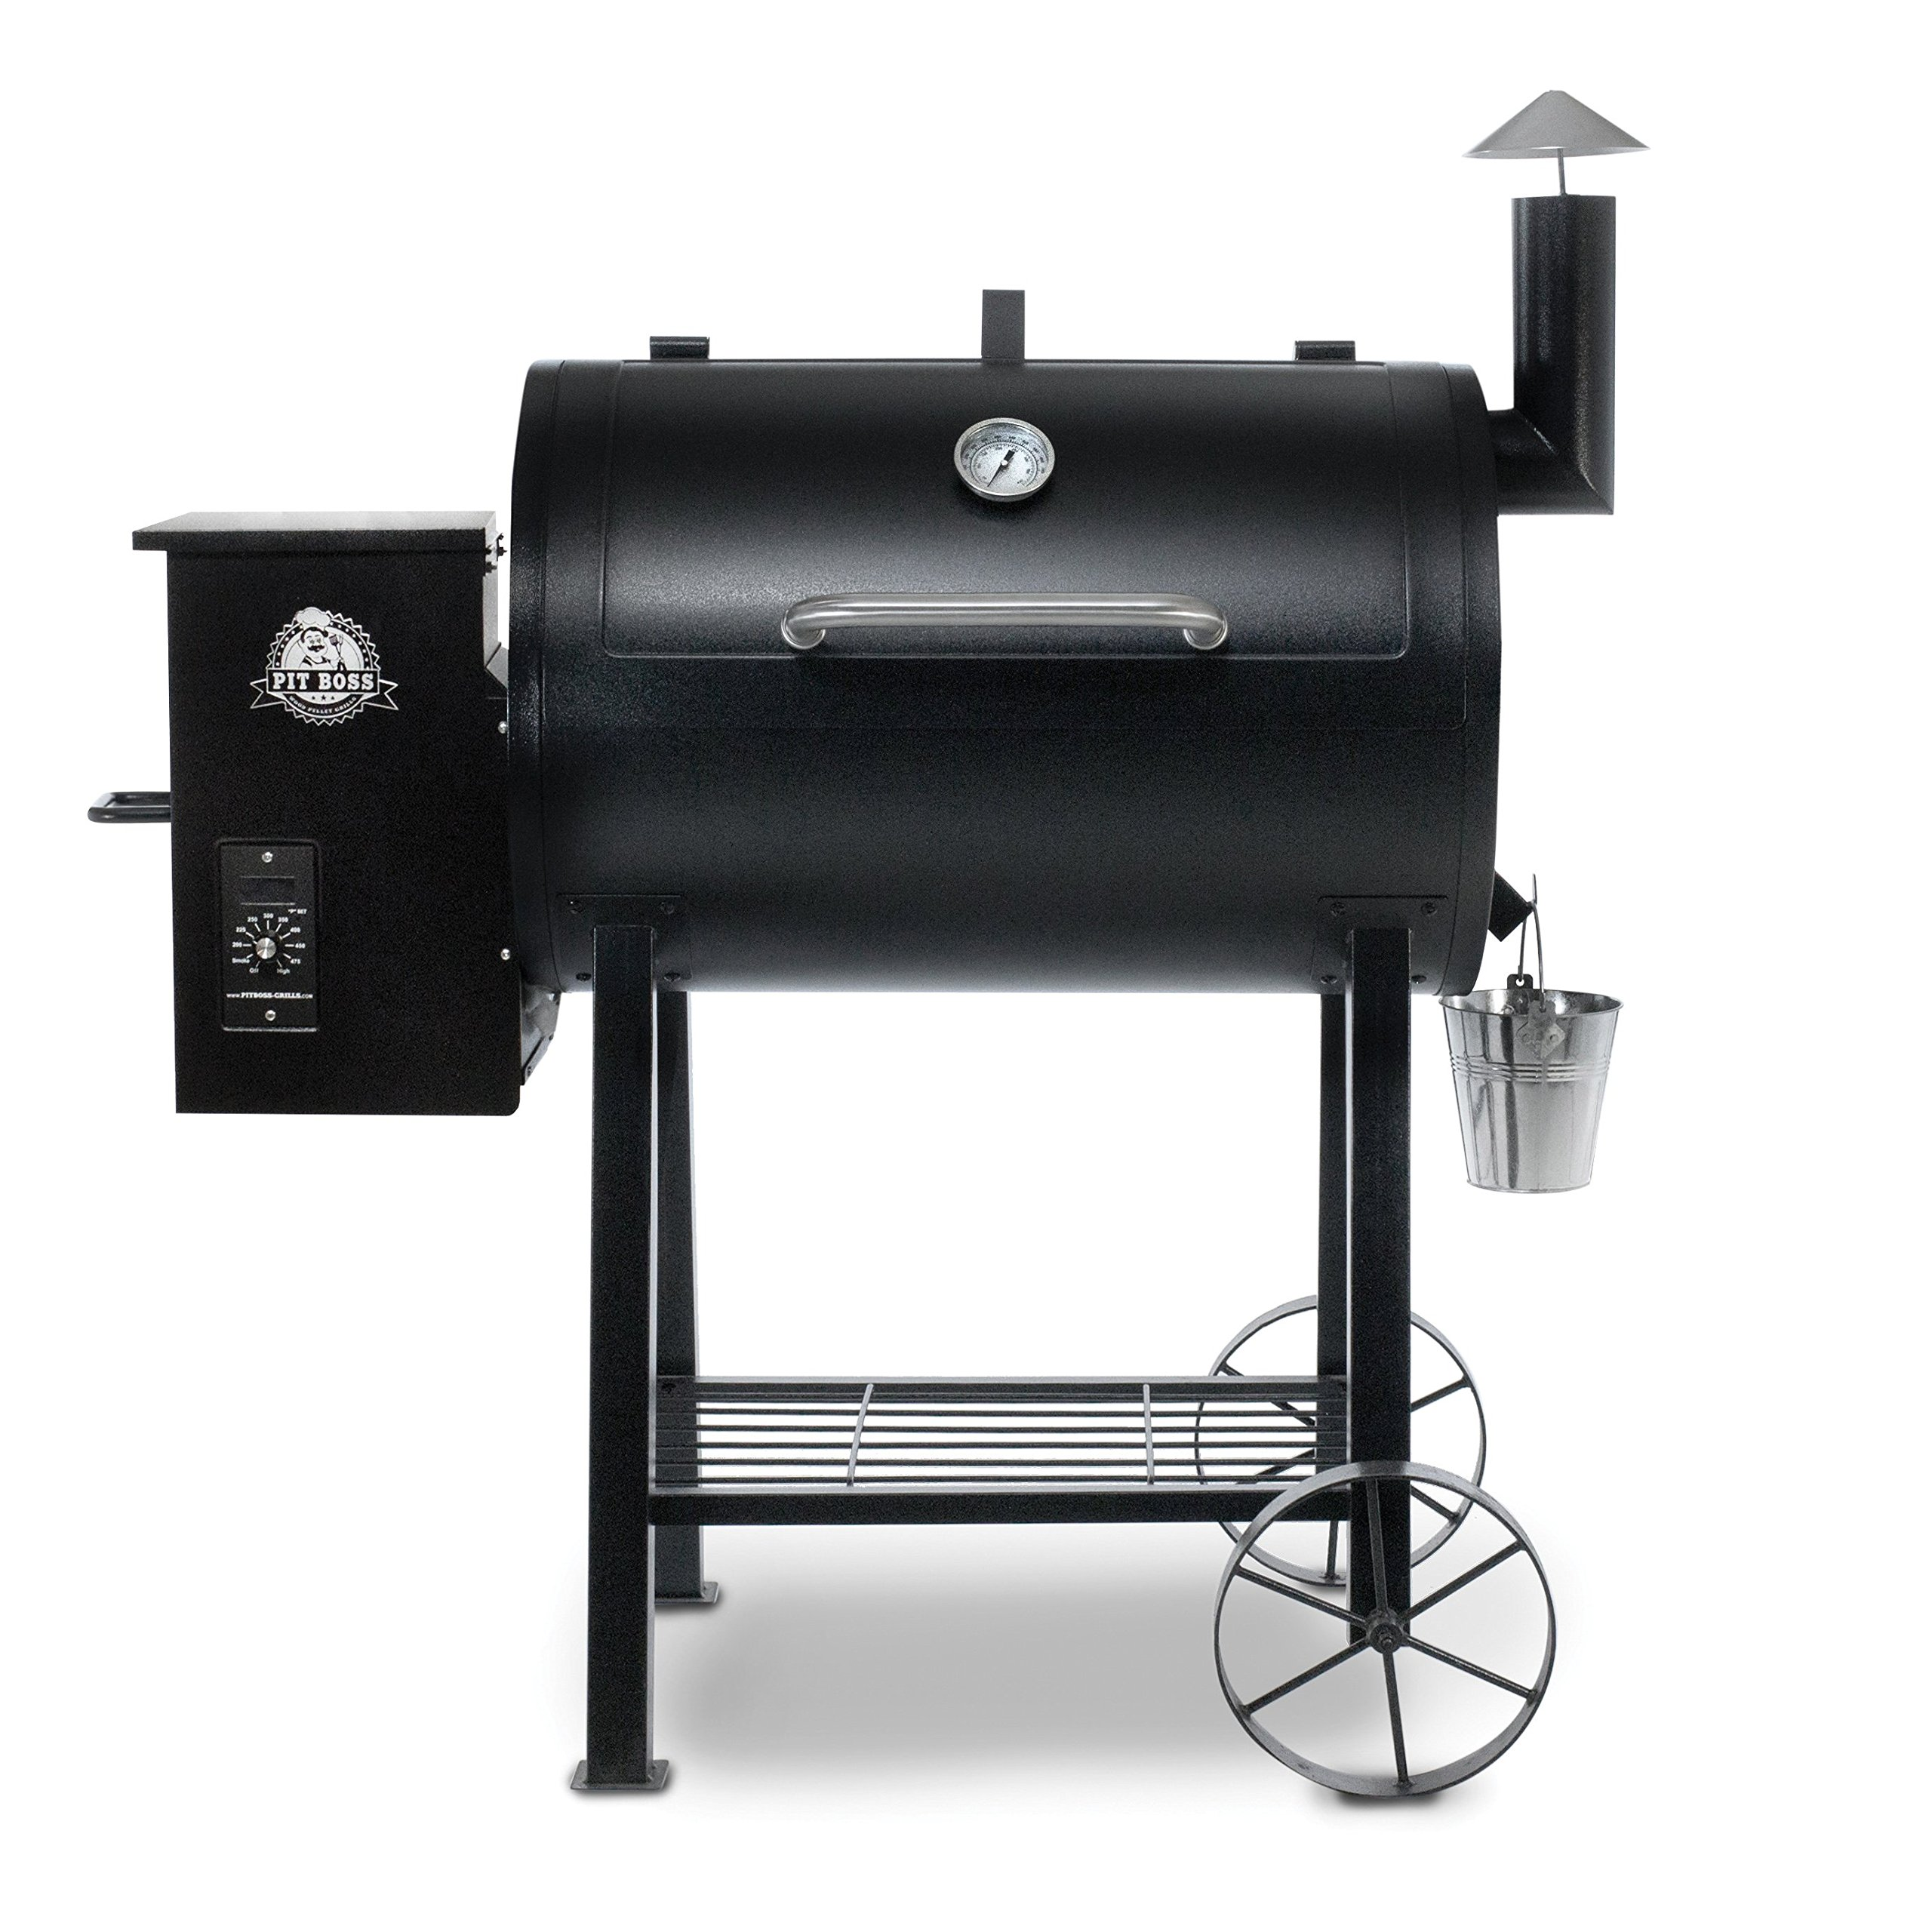 Pit Boss Grills 71820FB PB820FB BBQ Pellet Grill and Smoker, 820 sq. in. in by Pit Boss Grills